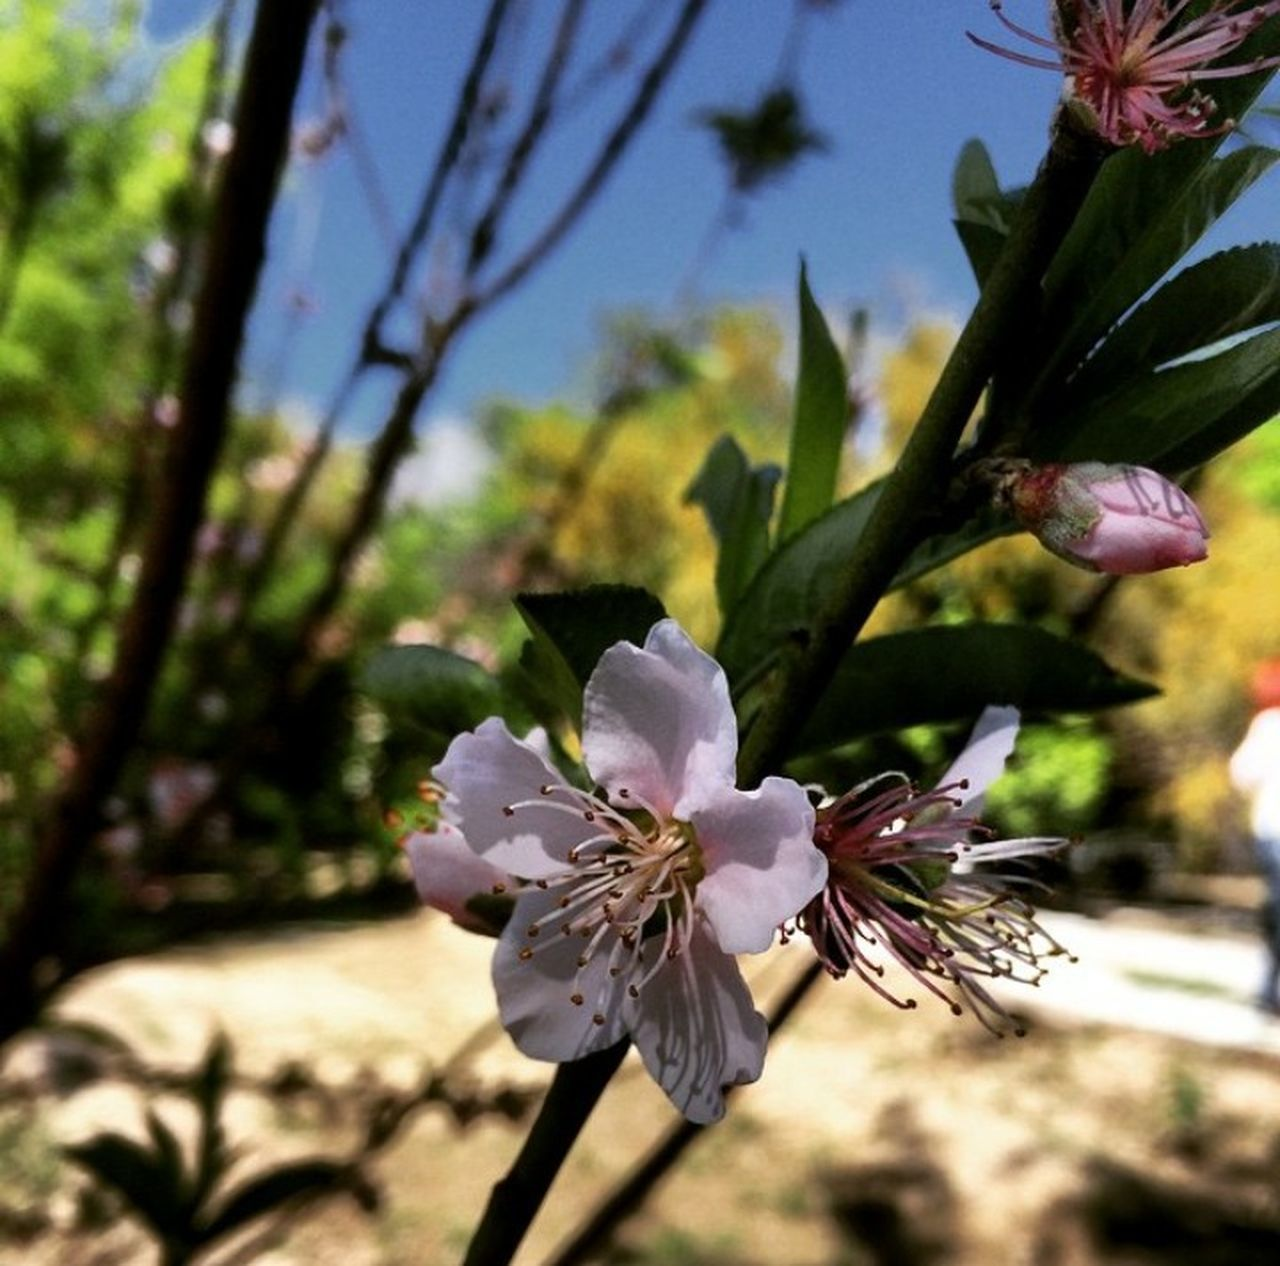 flower, fragility, nature, petal, beauty in nature, growth, flower head, blossom, freshness, botany, no people, springtime, plant, day, blooming, stamen, tree, close-up, branch, outdoors